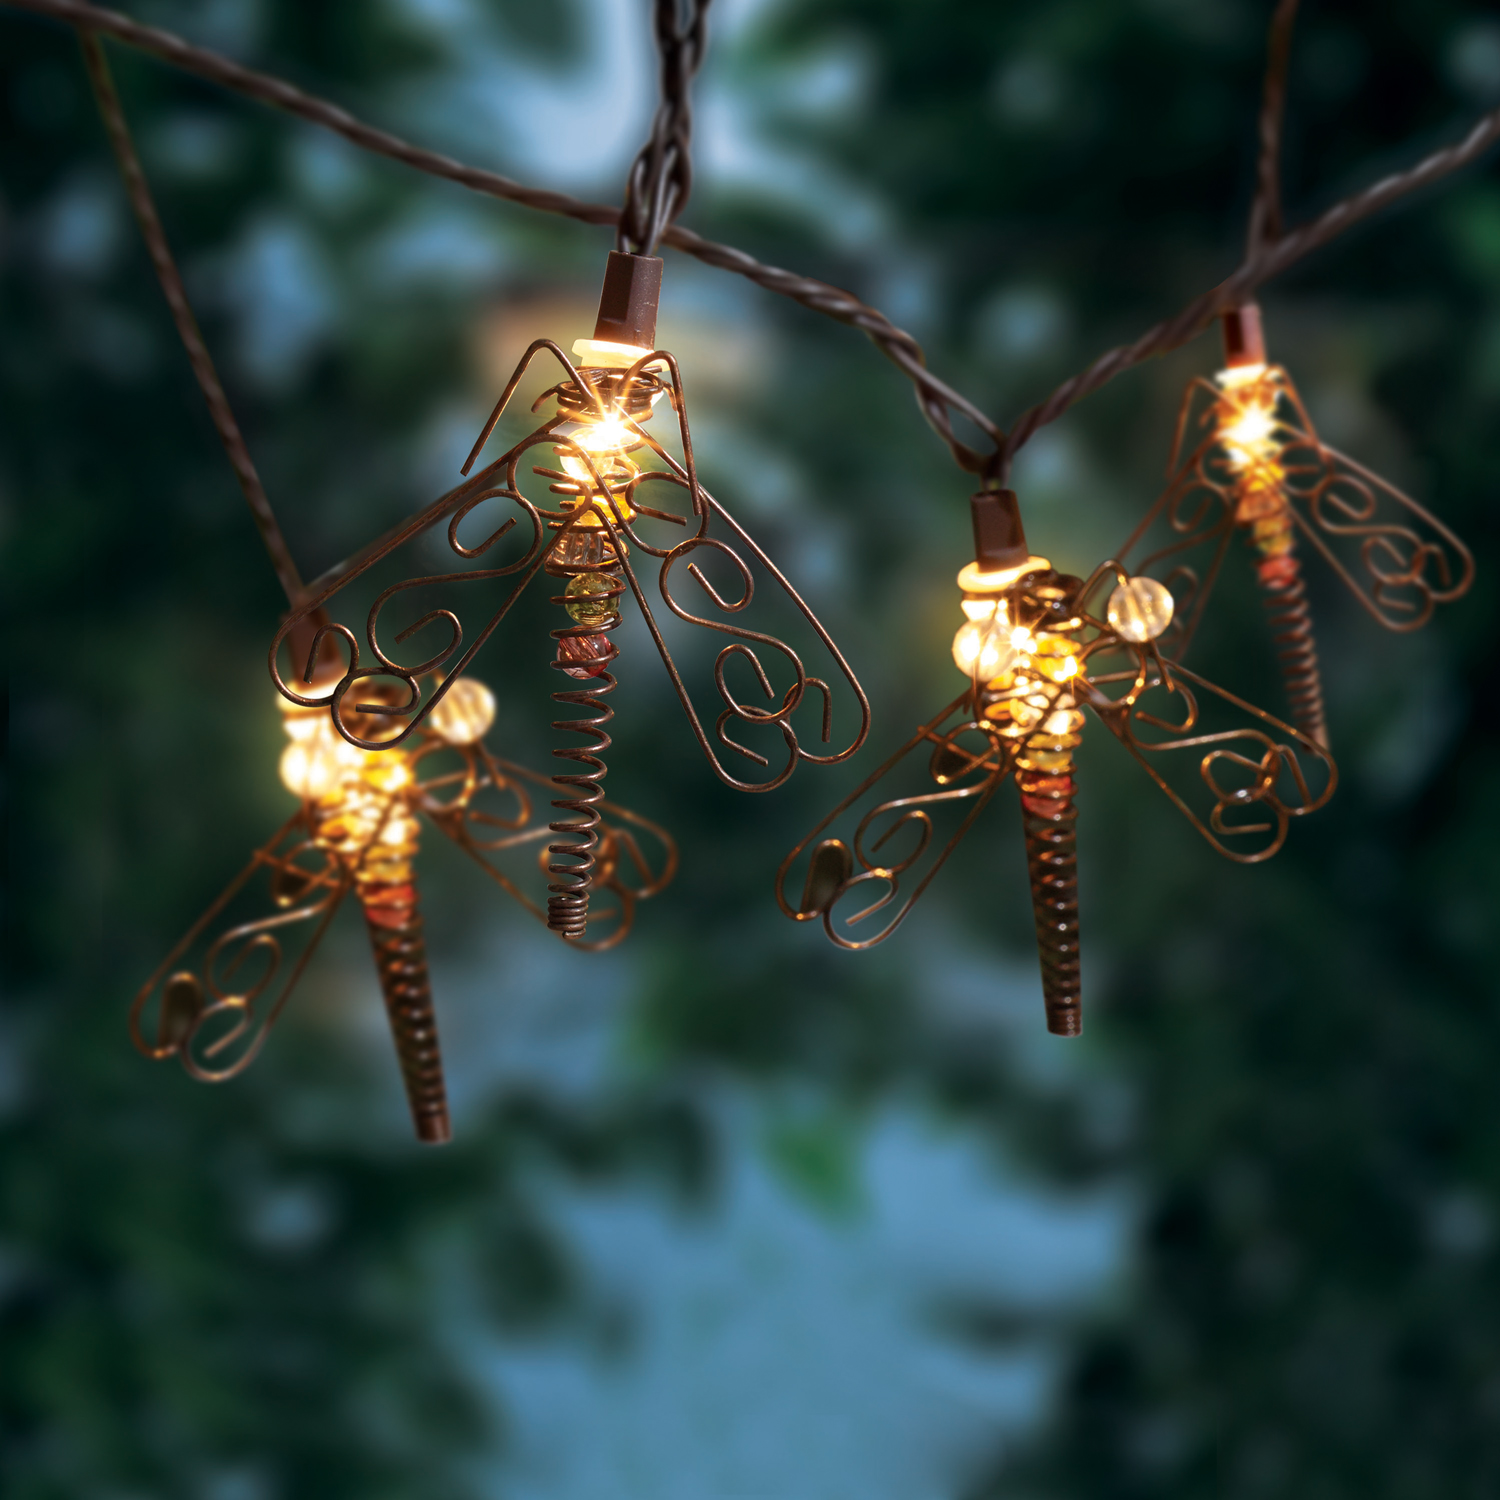 Mainstays 10ct String-to-String Metal Dragonfly Light Set